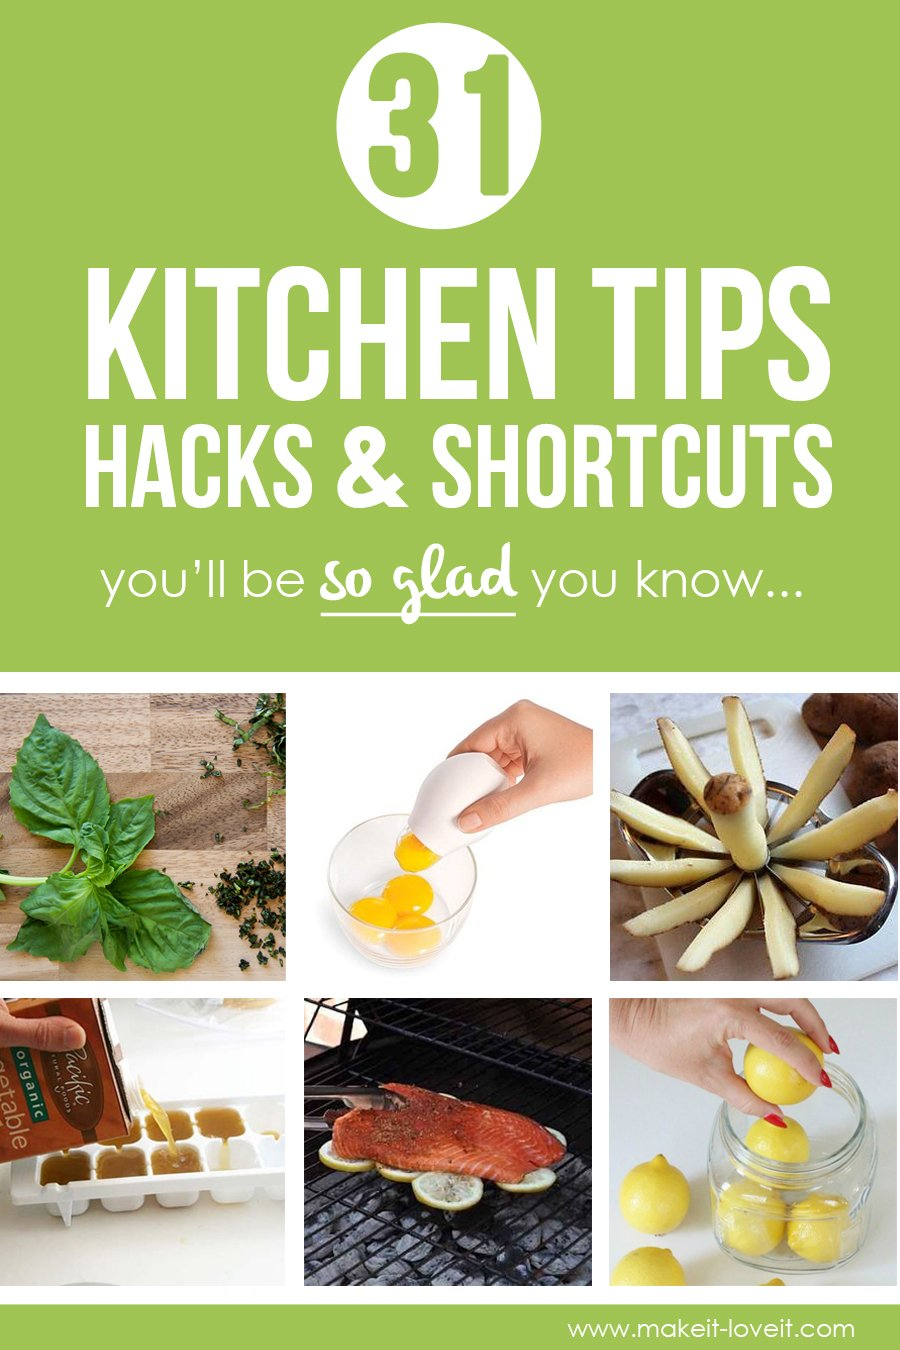 31 kitchen tips, hacks, & shortcuts you'll be so glad you know!